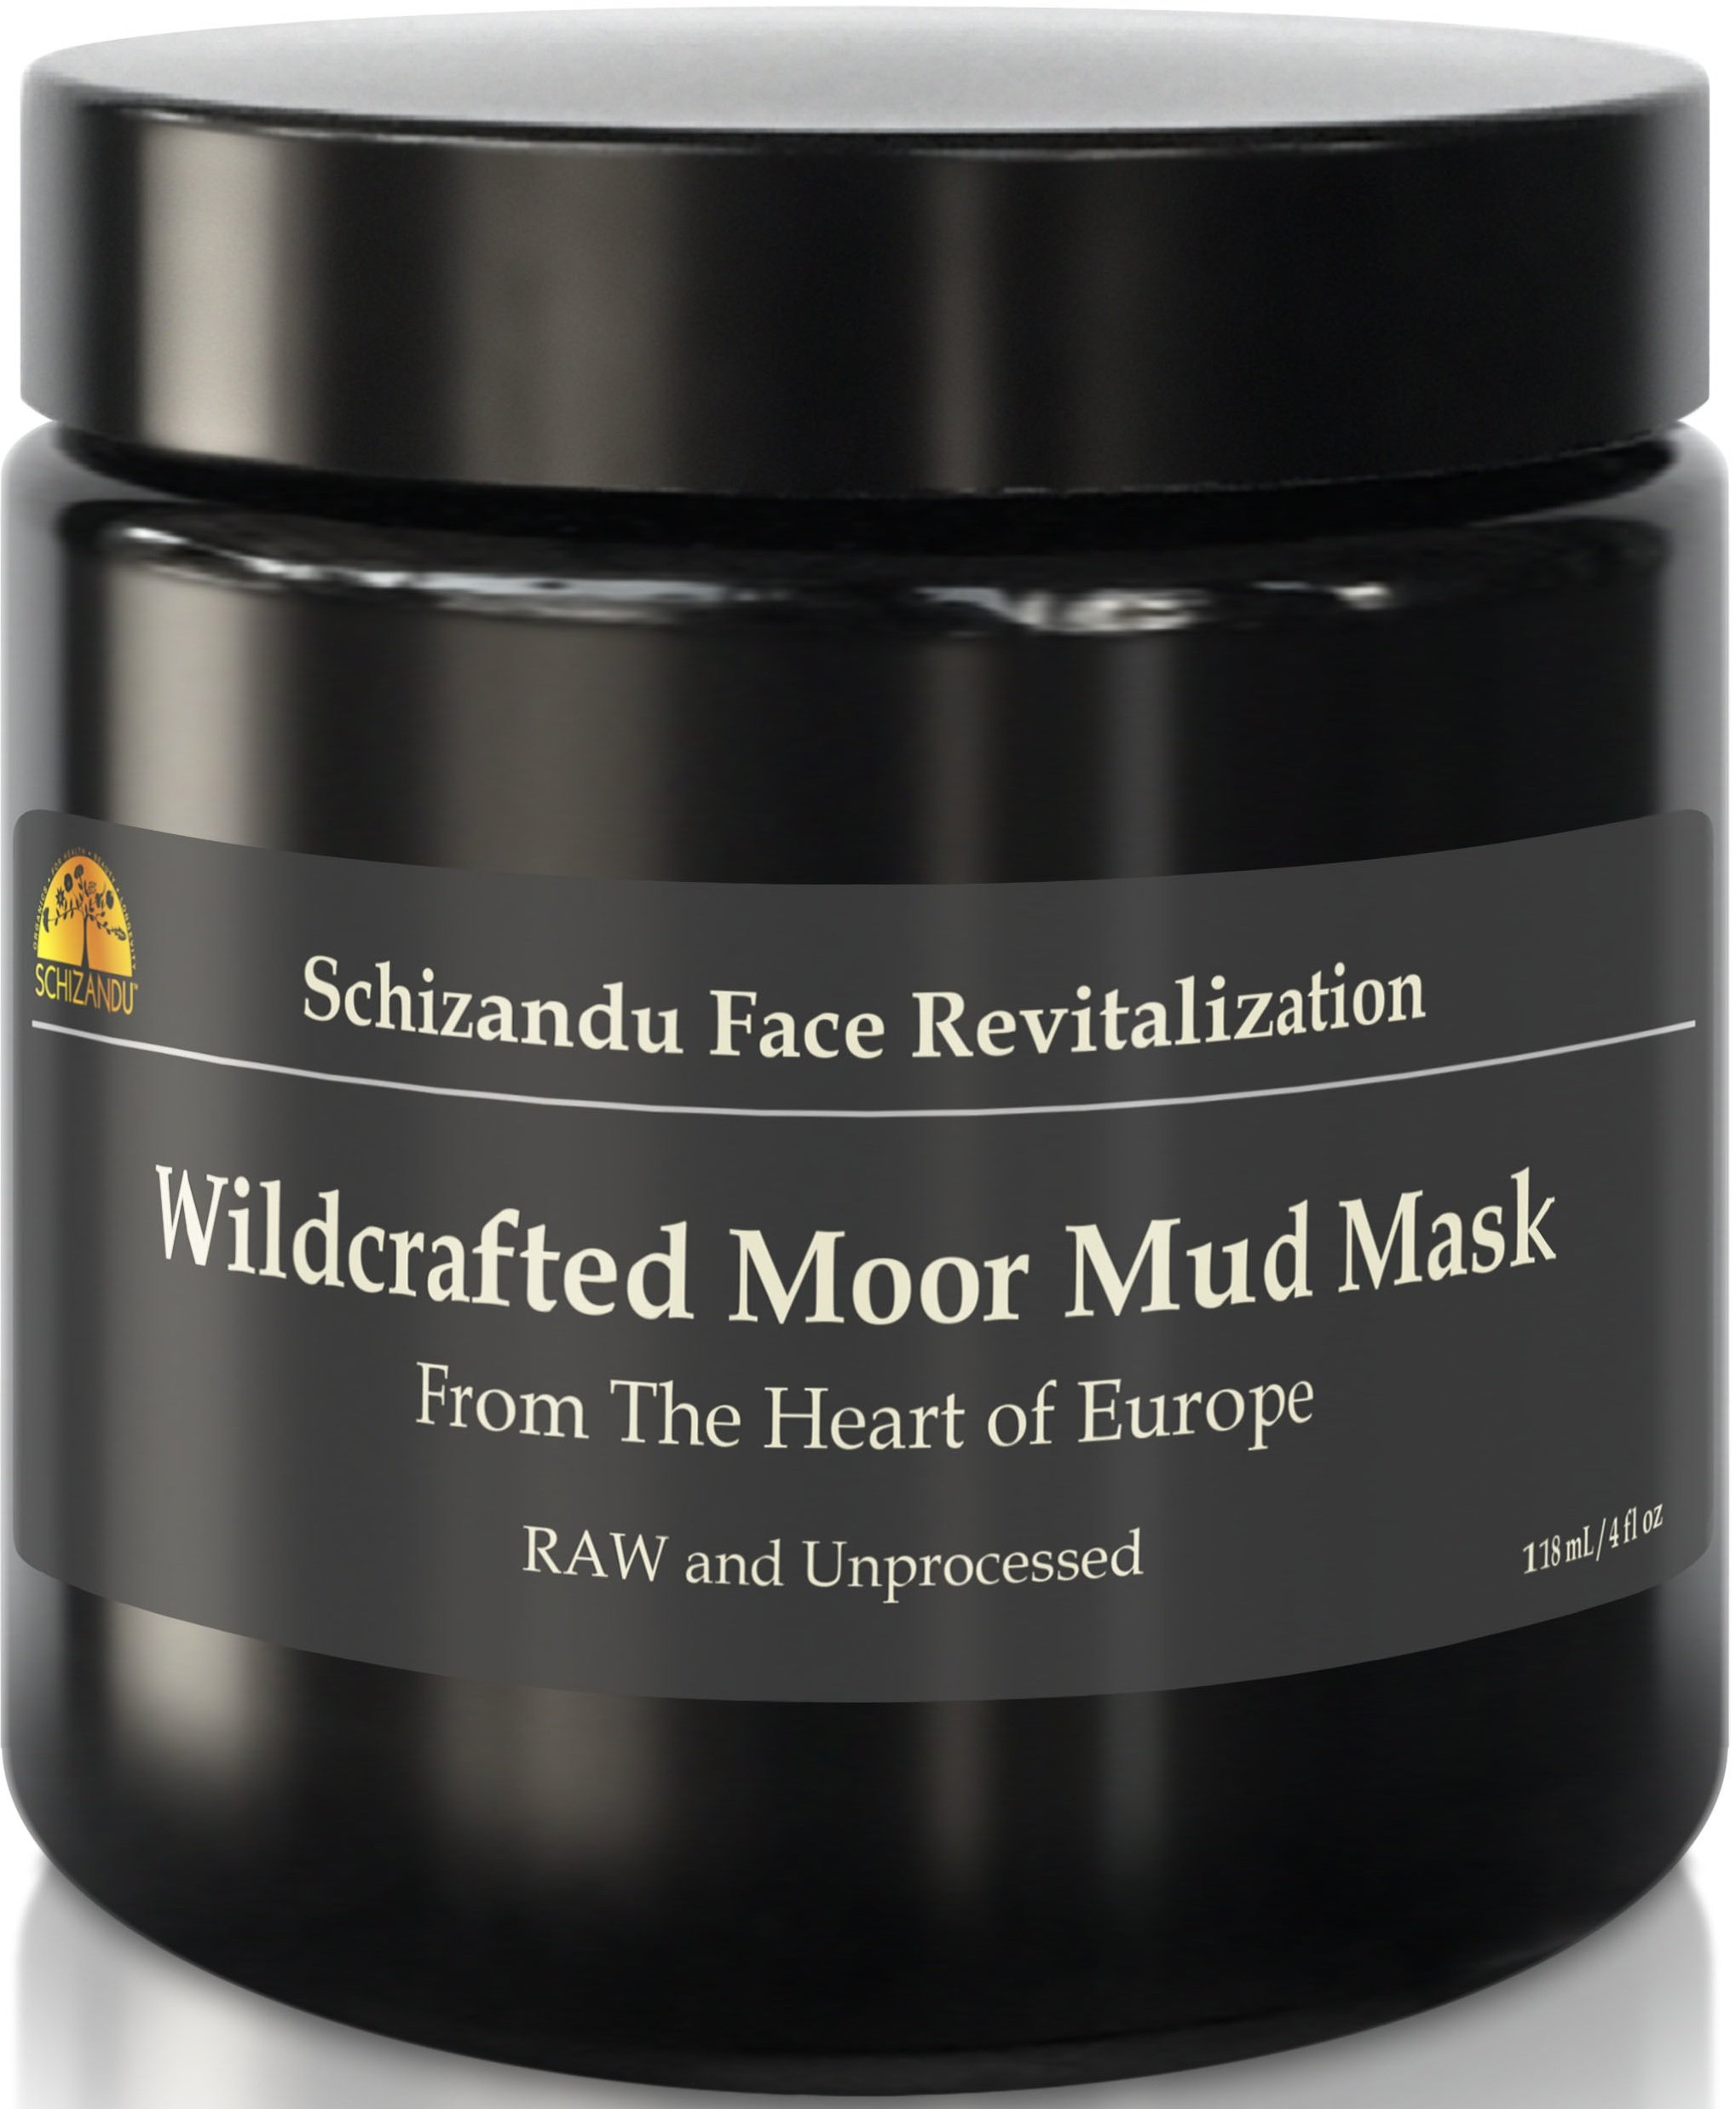 Mud Mask, Wildcrafted Moor Mud, Daily Beauty Sulfur Mask, Cleanse Detox, Rejuvenation and Cellular Regeneration with Fulvic Acid, Hydrating, Stimulating Natural Facial Treatment